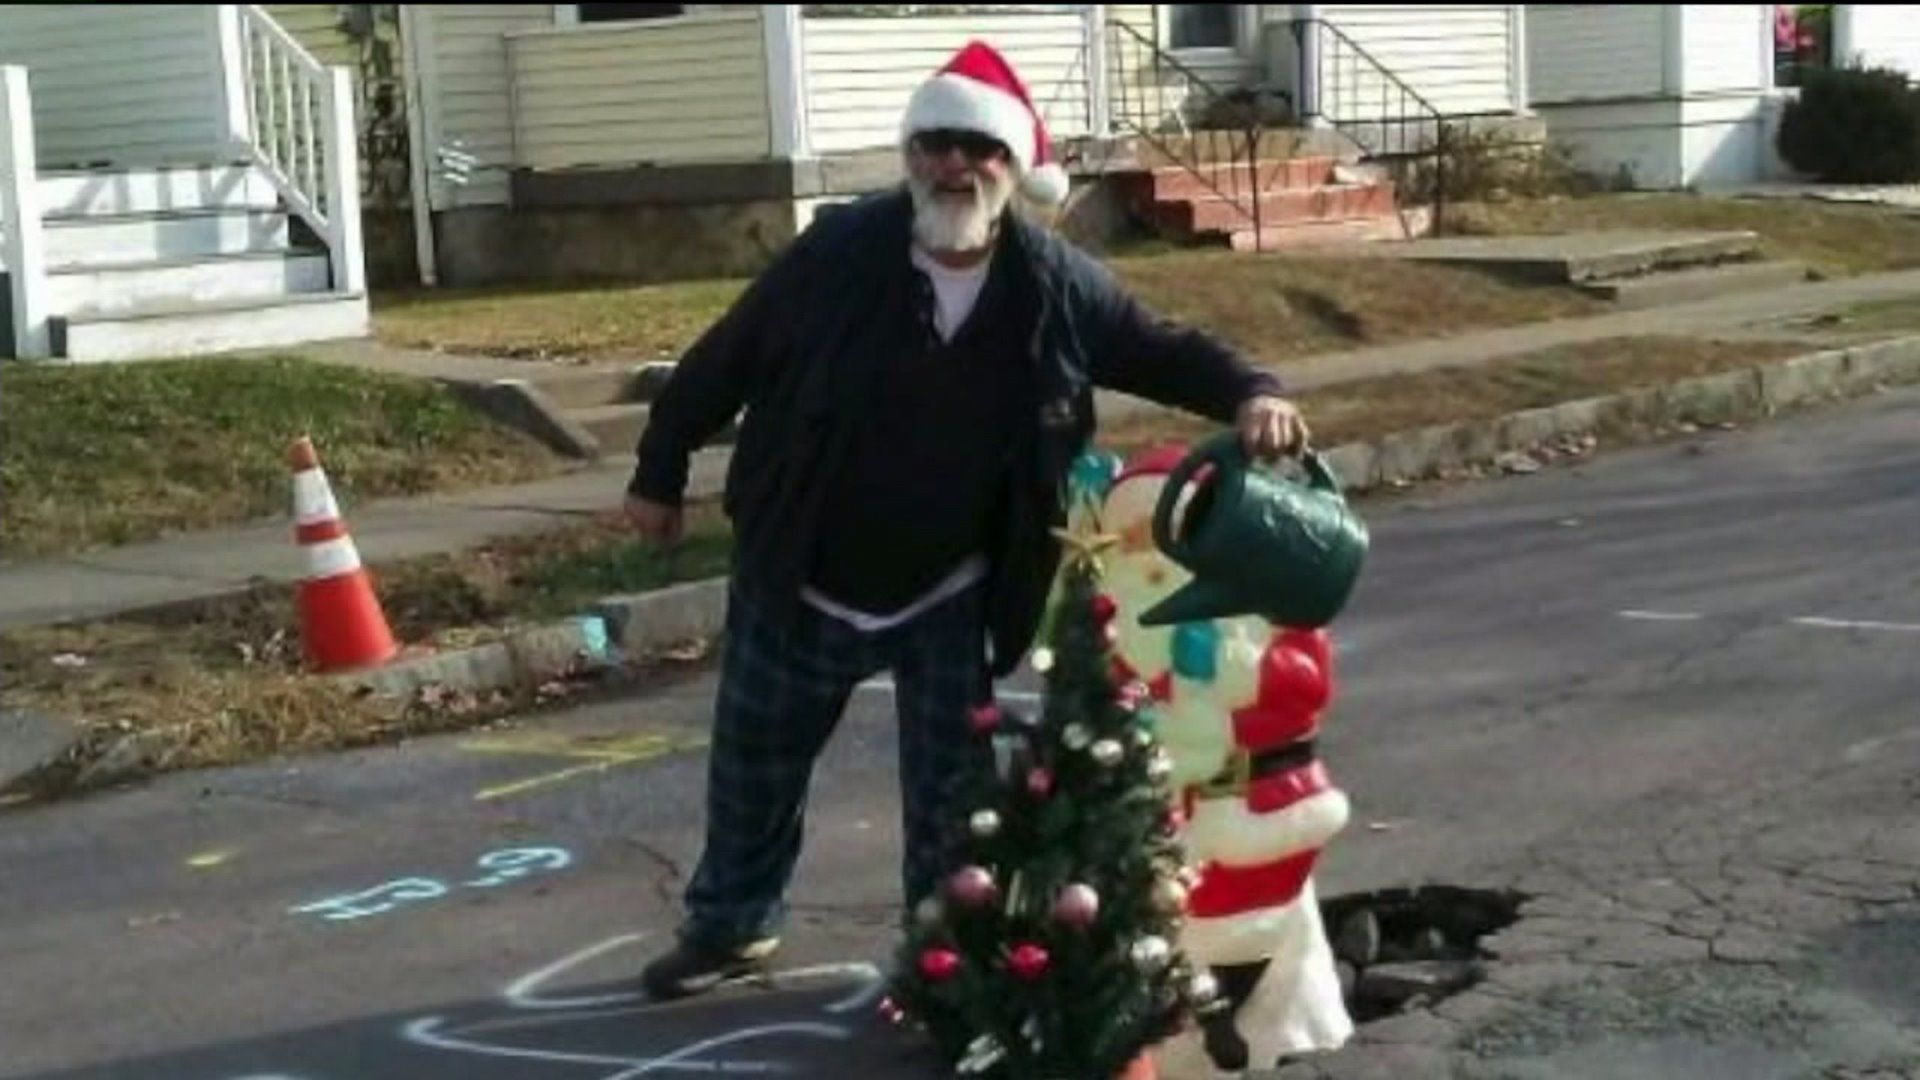 National News - Pennsylvania Neighborhood Fills Growing Pothole With Christmas Tree